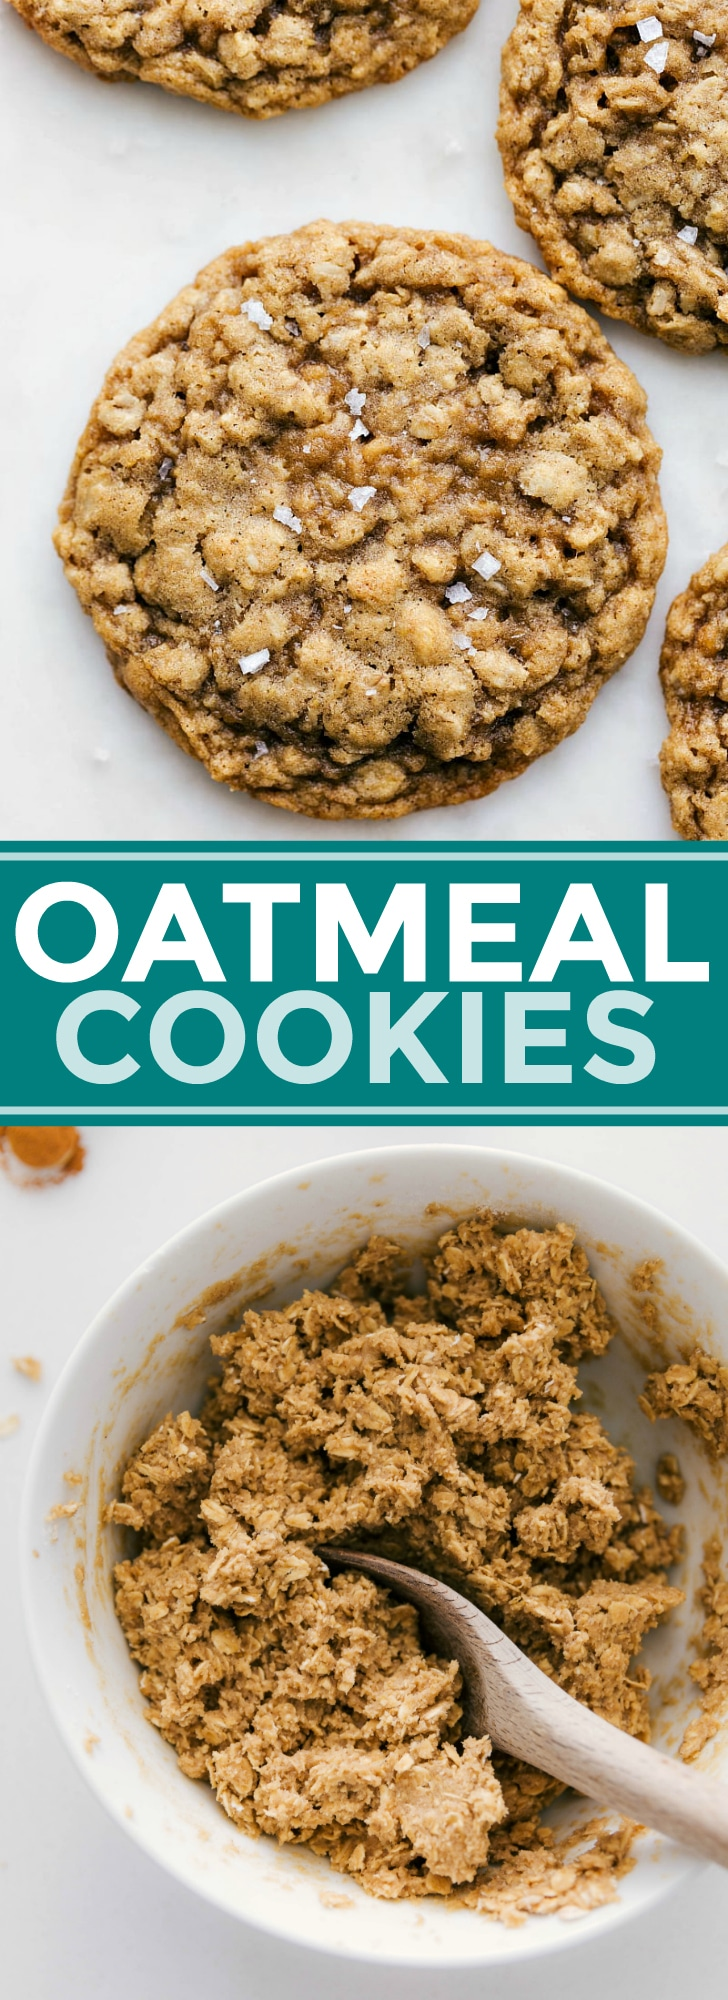 The ultimate BEST EVER soft, chewy, and flavorful oatmeal cookies! Enjoy these cookies as is or learn how to add in raisins, nuts, and/or chocolate chips! via chelseasmessyapron.com #oatmeal #cookies #cookie #recipe #easy #quick #christmas #exchange